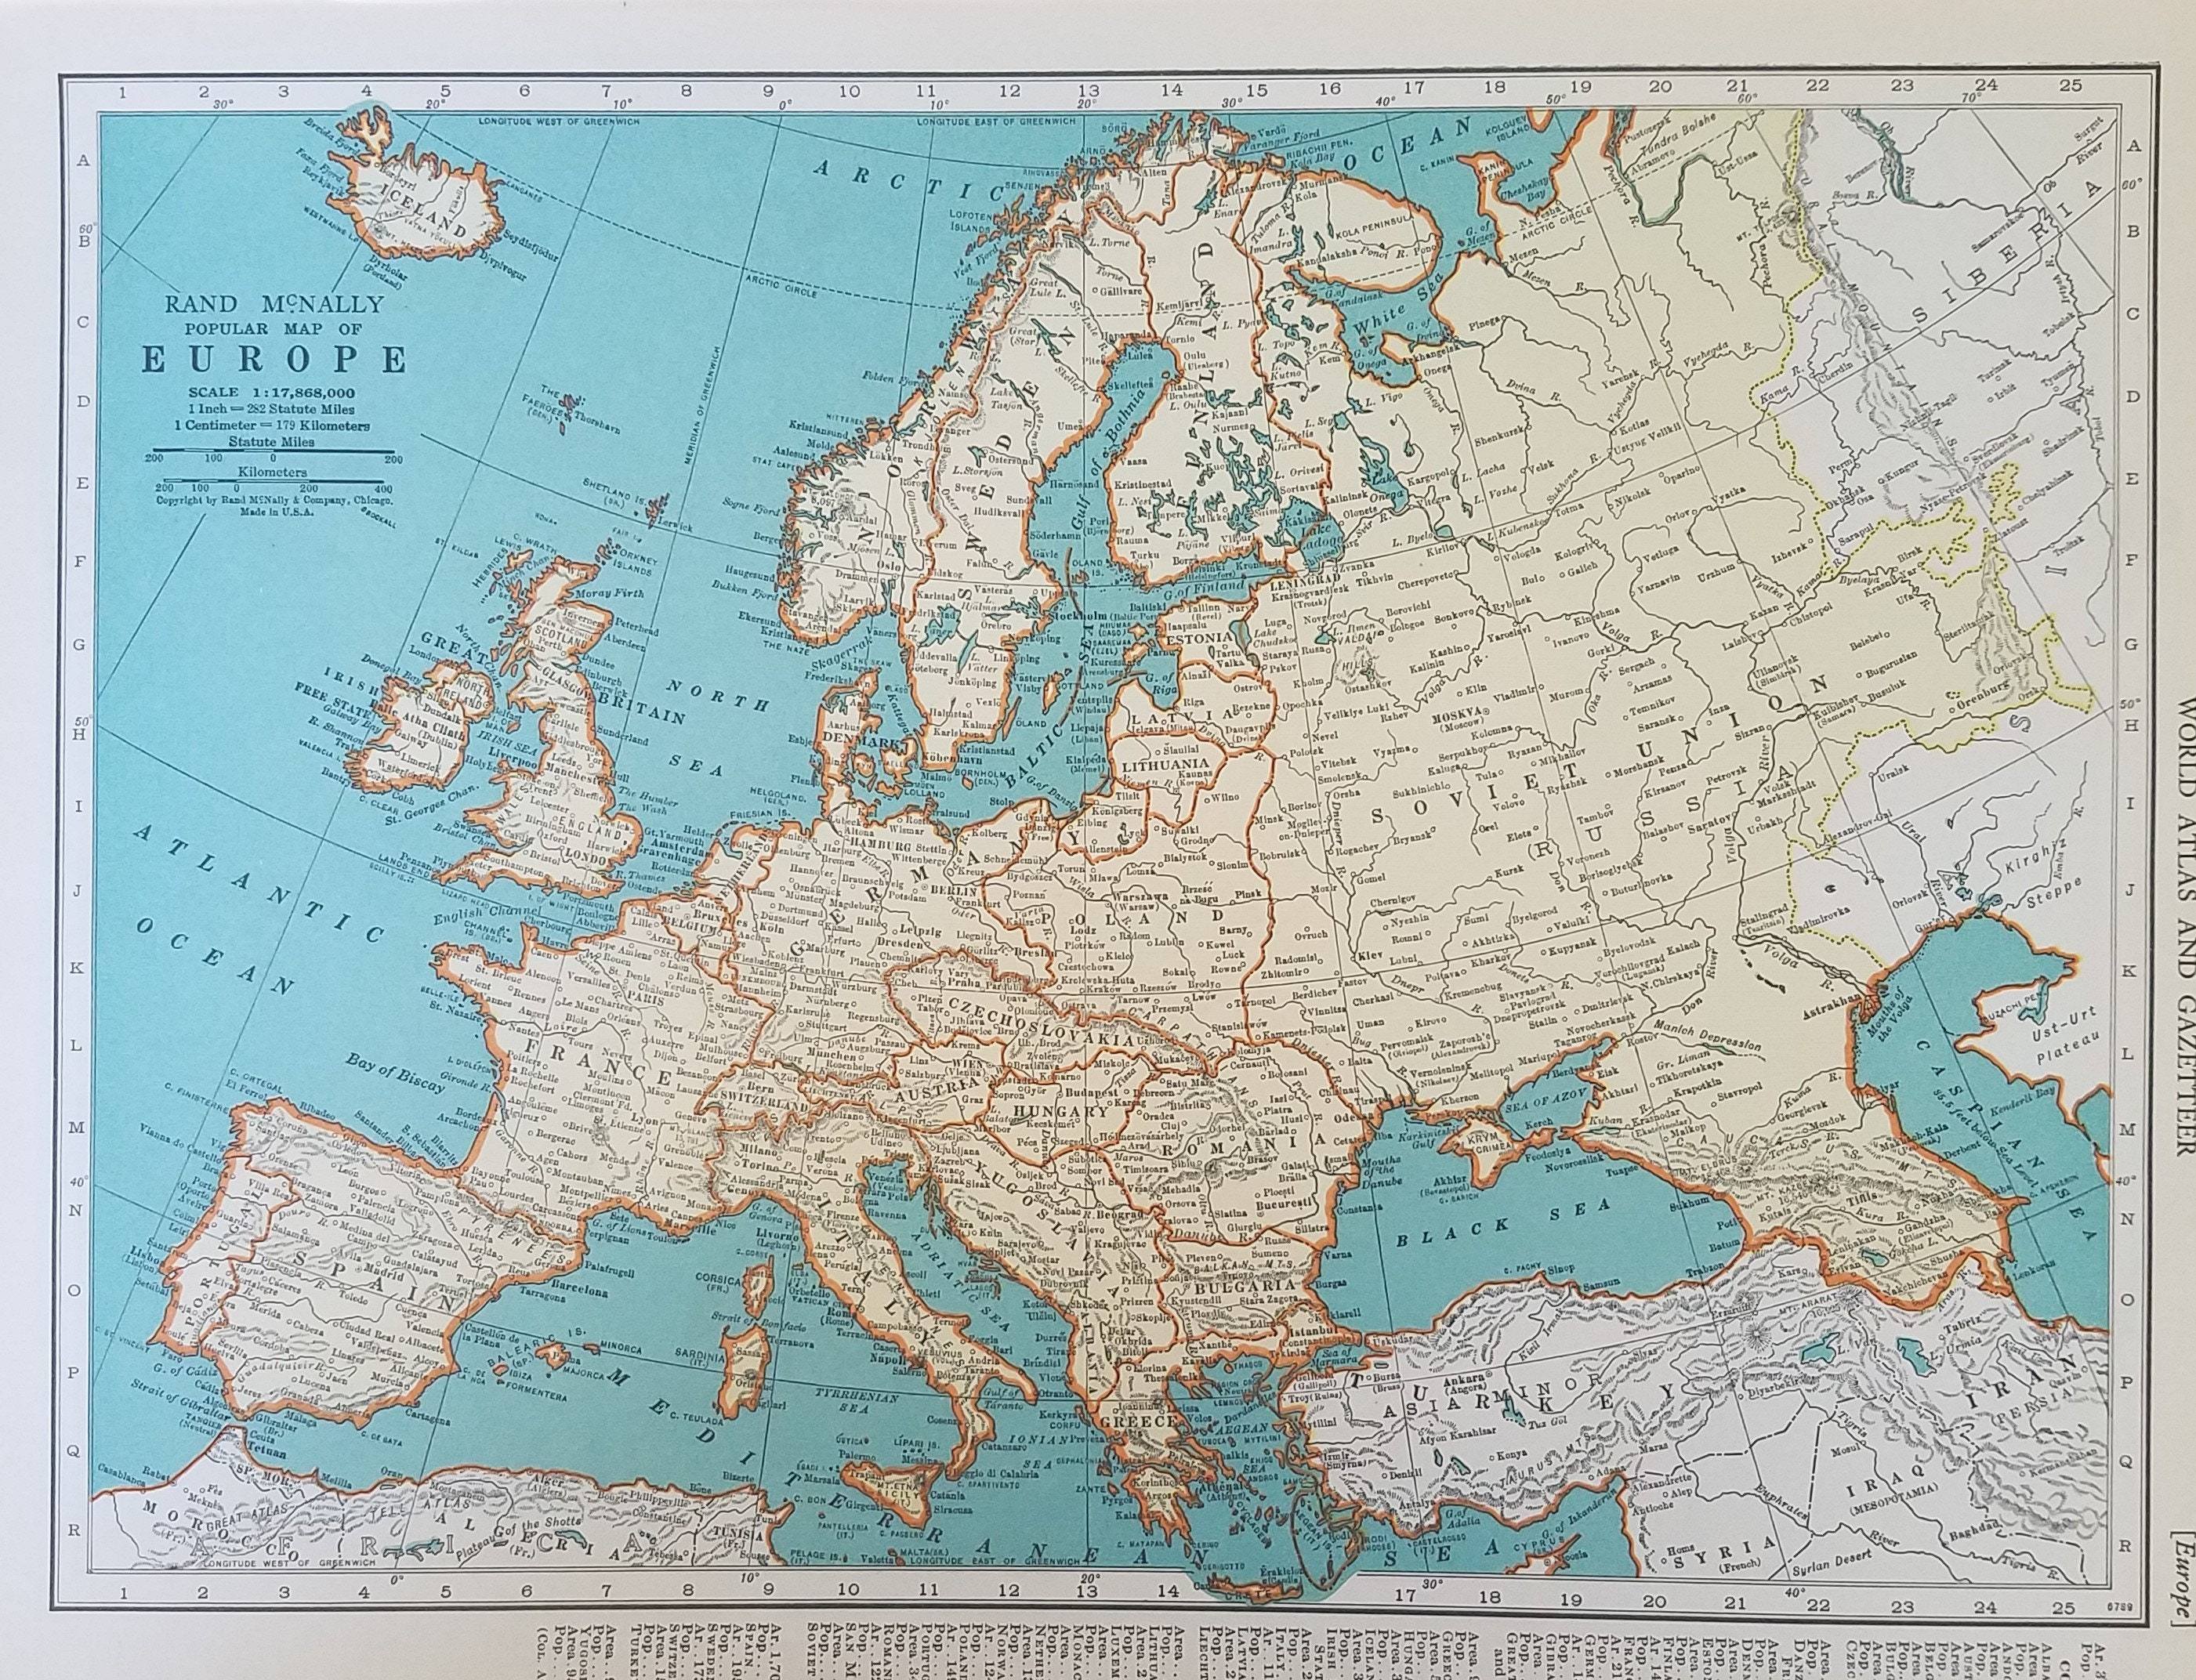 Map Of England France And Italy.Europe Map British Isles Map Ireland Scotland England Spain France Germany Italy Poland 2 Sided Place On The World Map 1930 S 1940 S 9x12